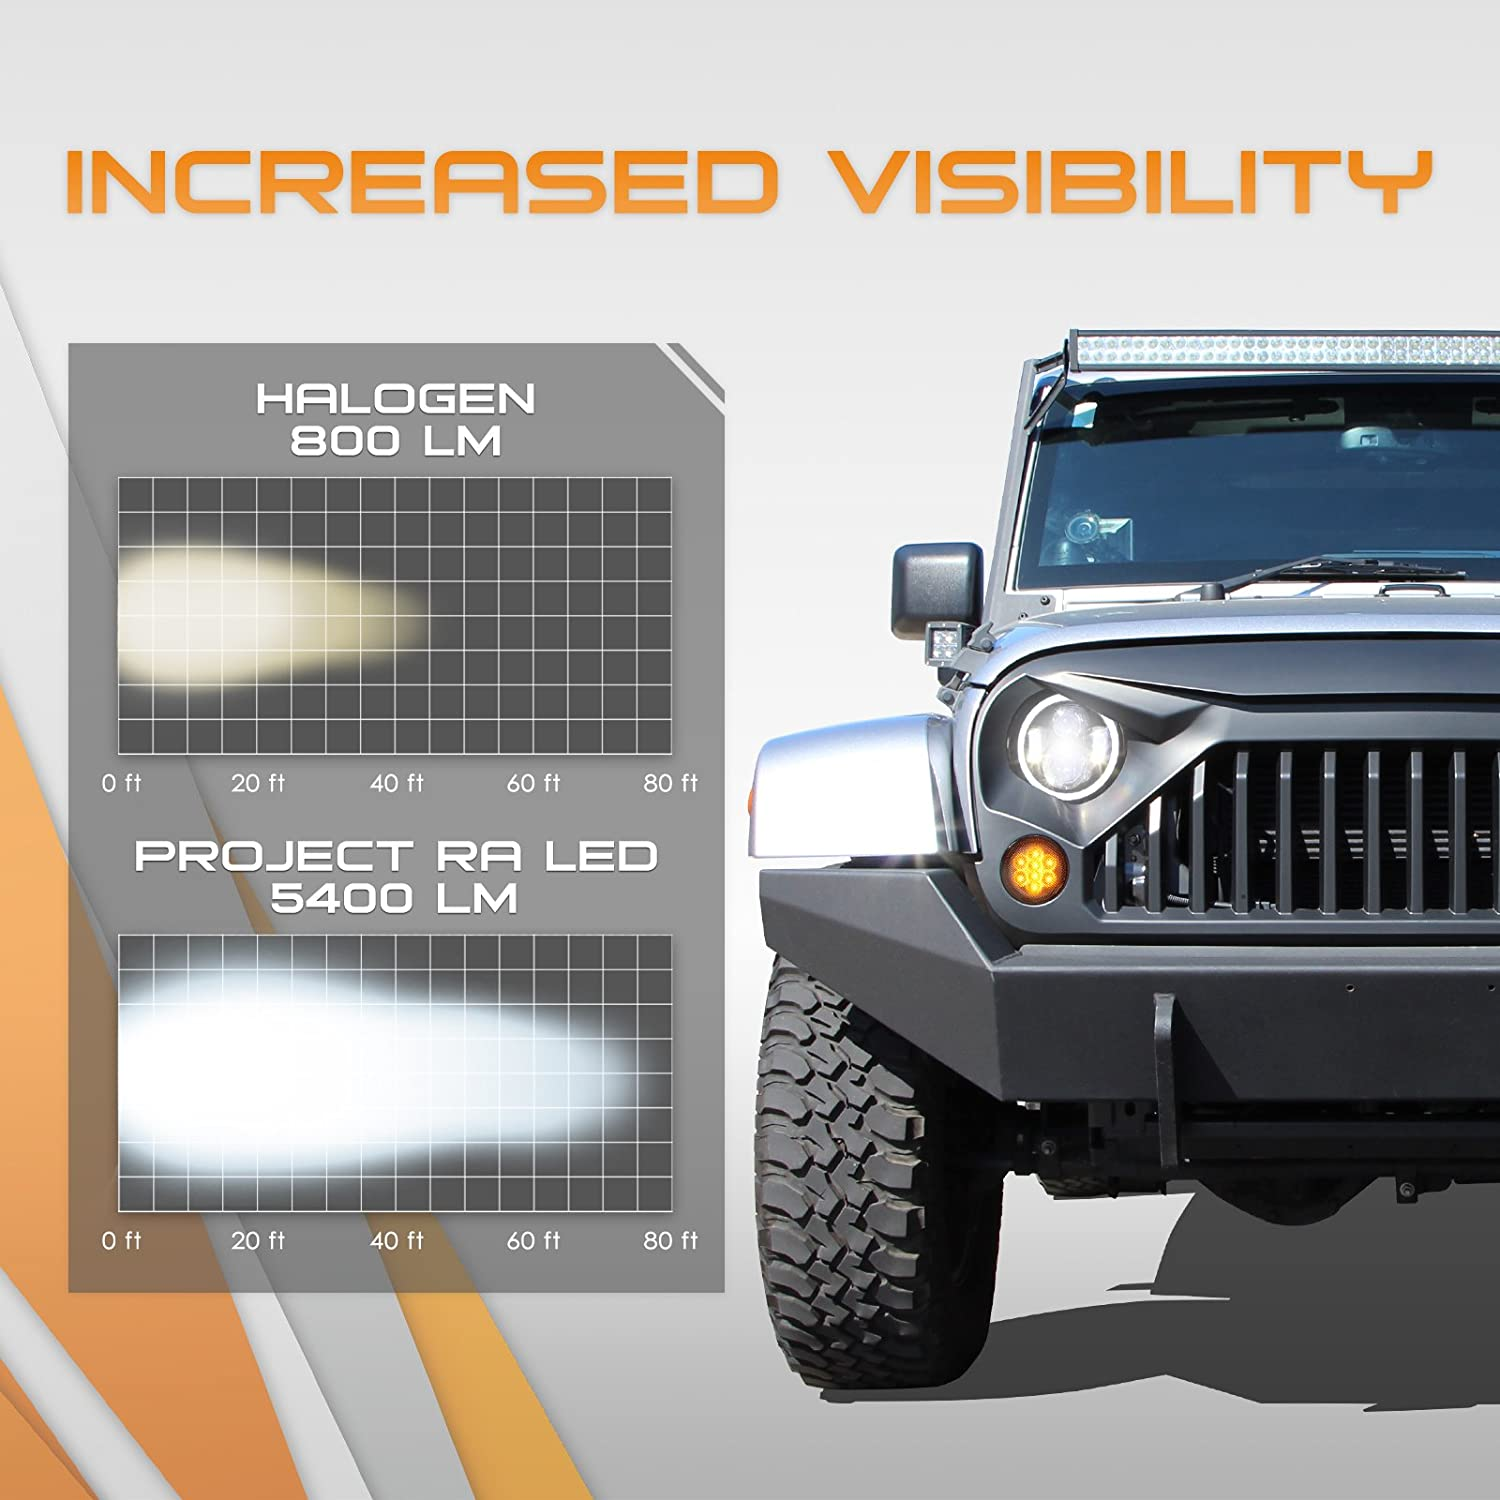 Jeep Tj Wiring Diagram For Led Blinkers Optix Wrangler H6024 7 Inch Round 120w Total Cree Projector Headlights Angel Eyes White Halo Ring Drl Turn Signal 1997 2016 Jk